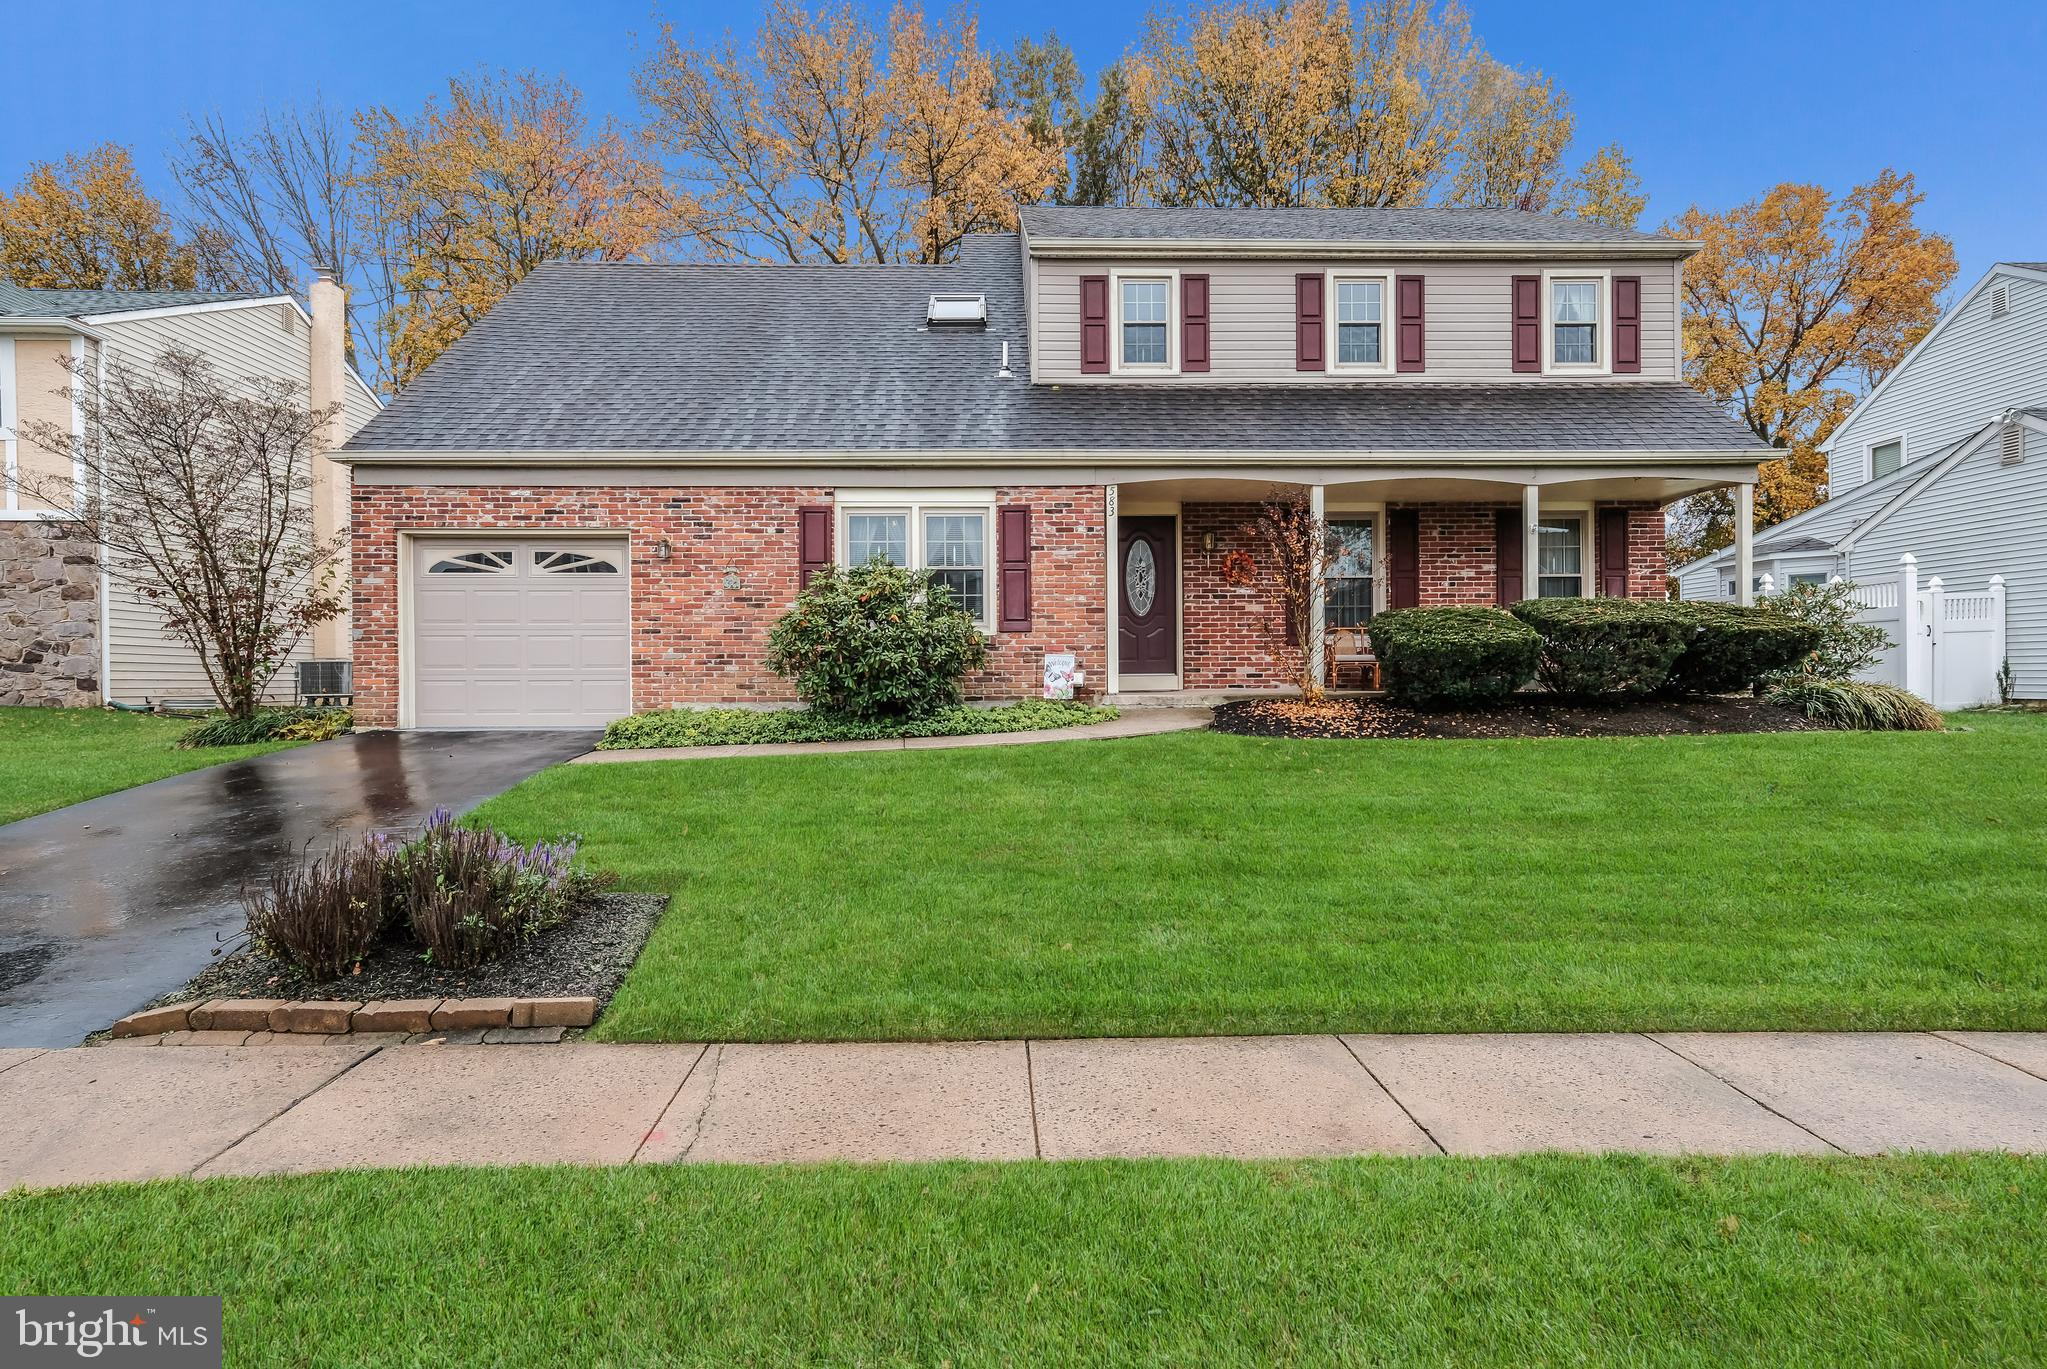 583 BUCK DRIVE, FAIRLESS HILLS, PA 19030